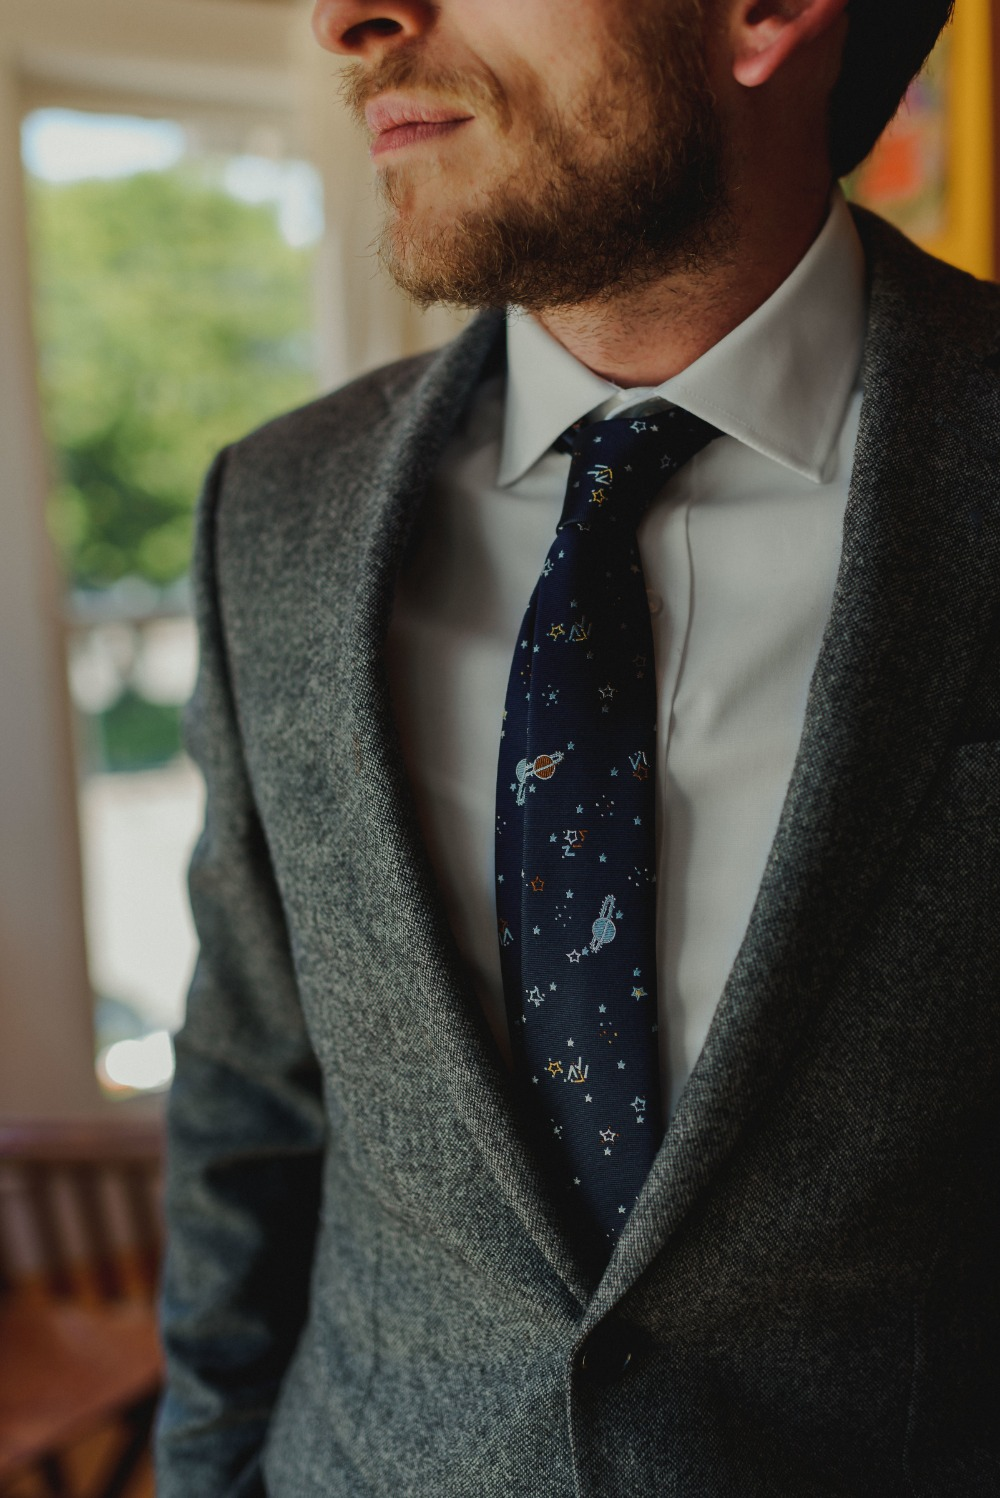 space tie for the groom